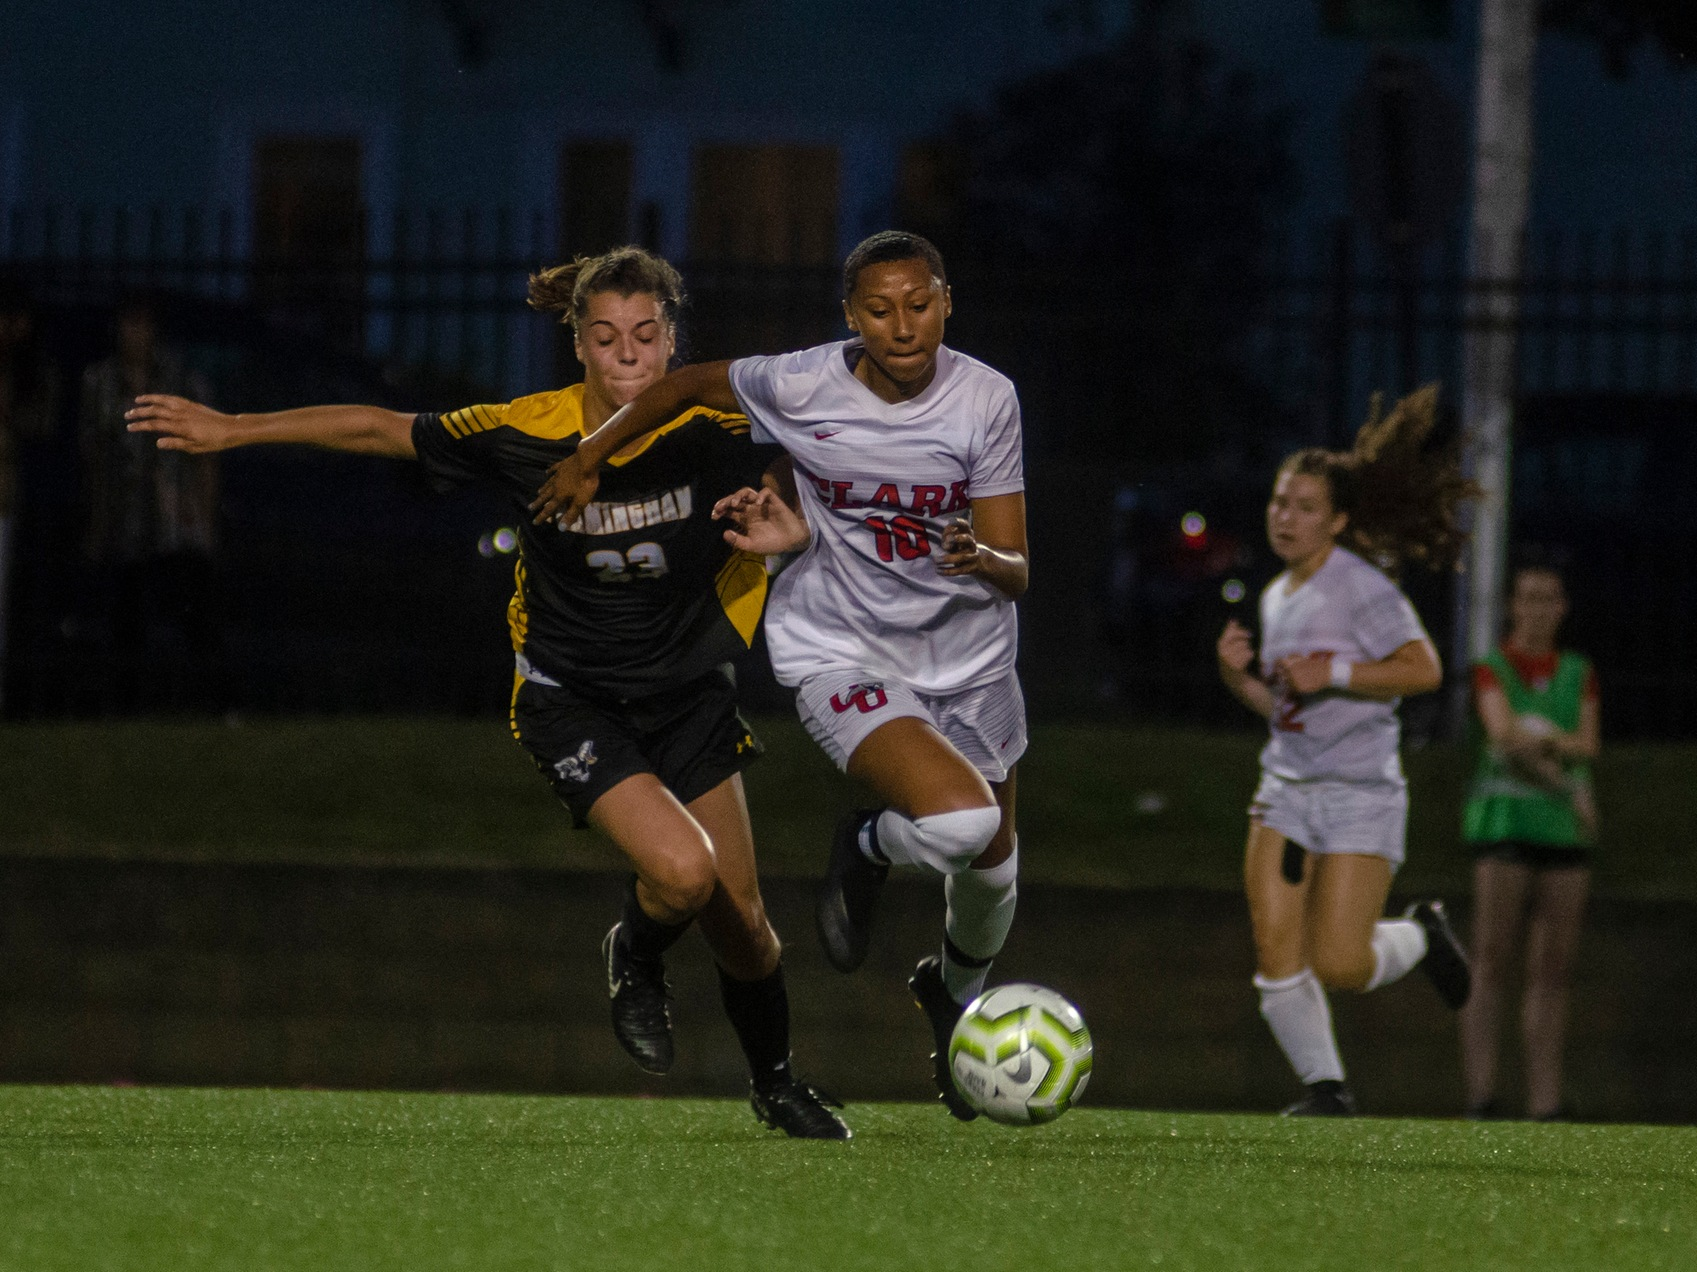 Cougars Top Worcester State in Away Victory